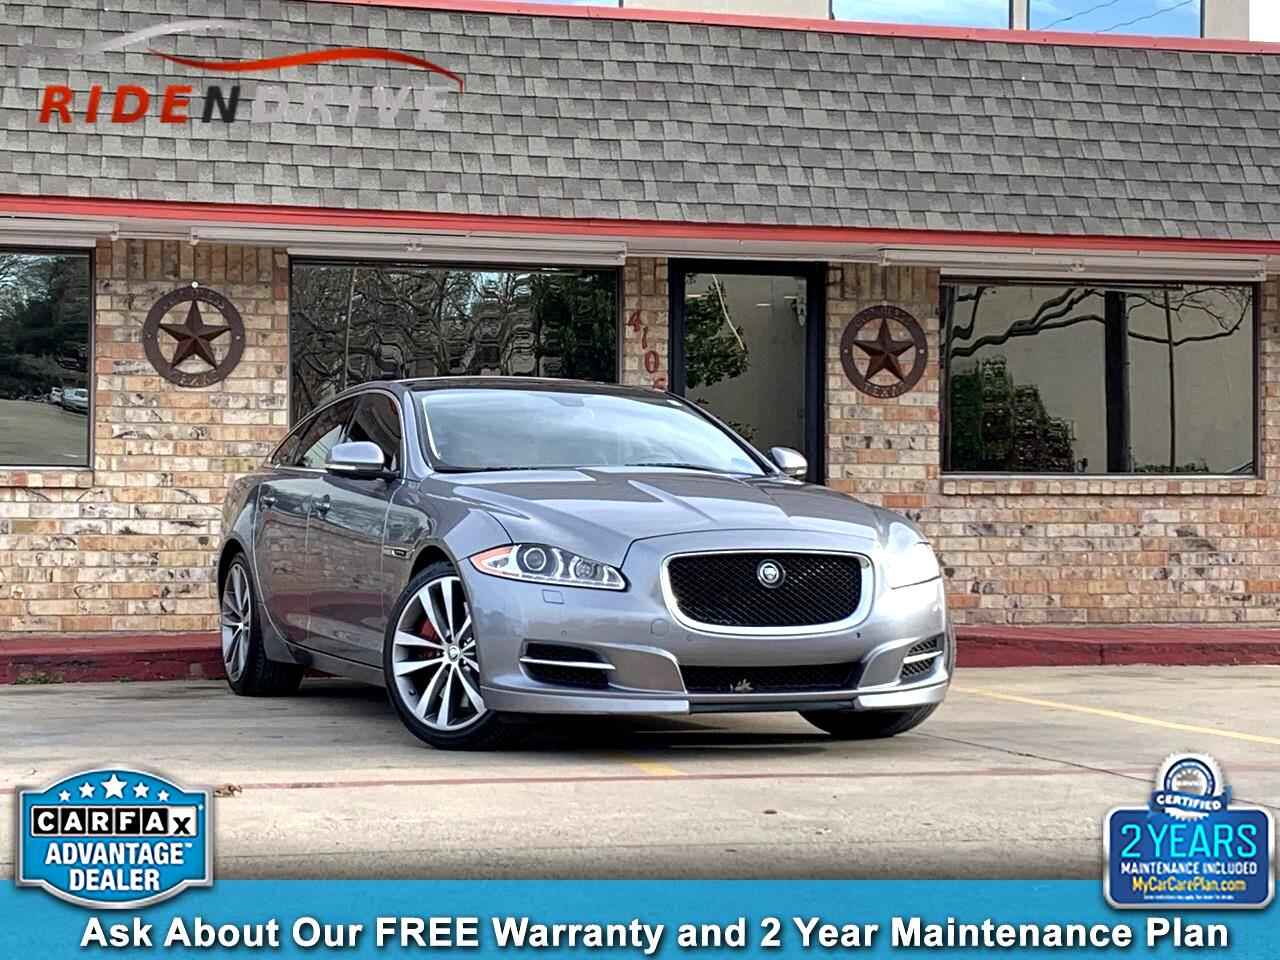 2013 Jaguar XJ 4dr Sdn Supercharged RWD